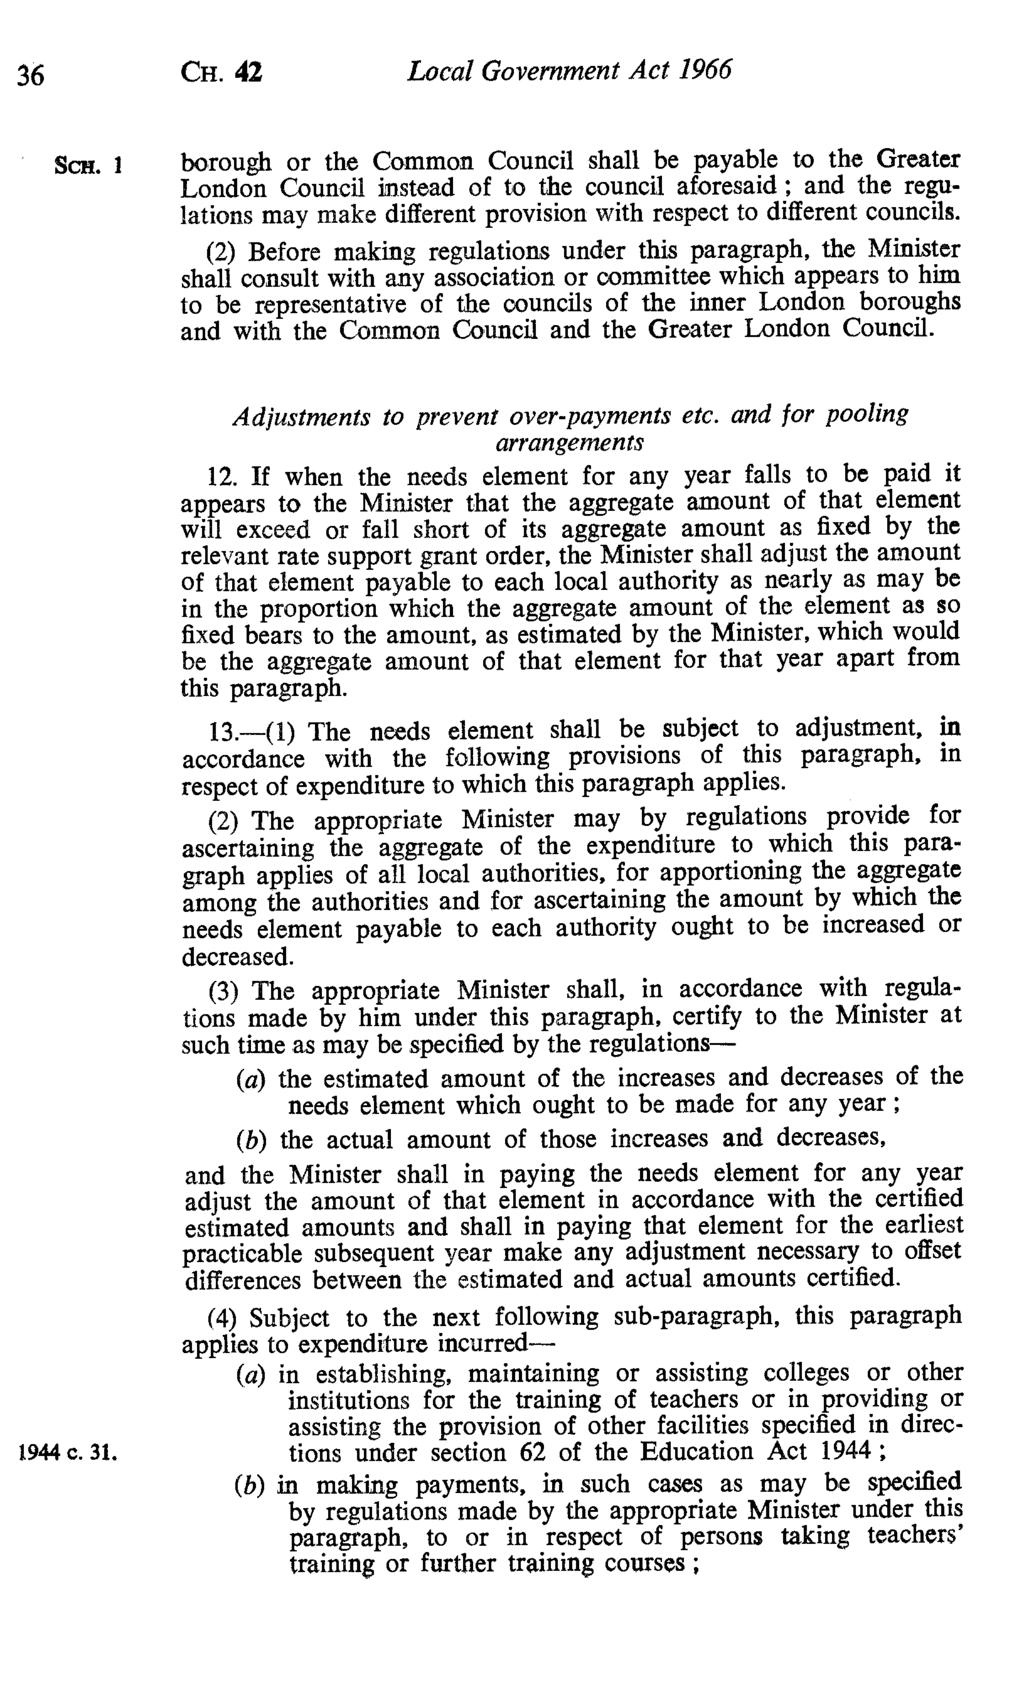 36 CH. 42 Local Government Act 1966 Scn.